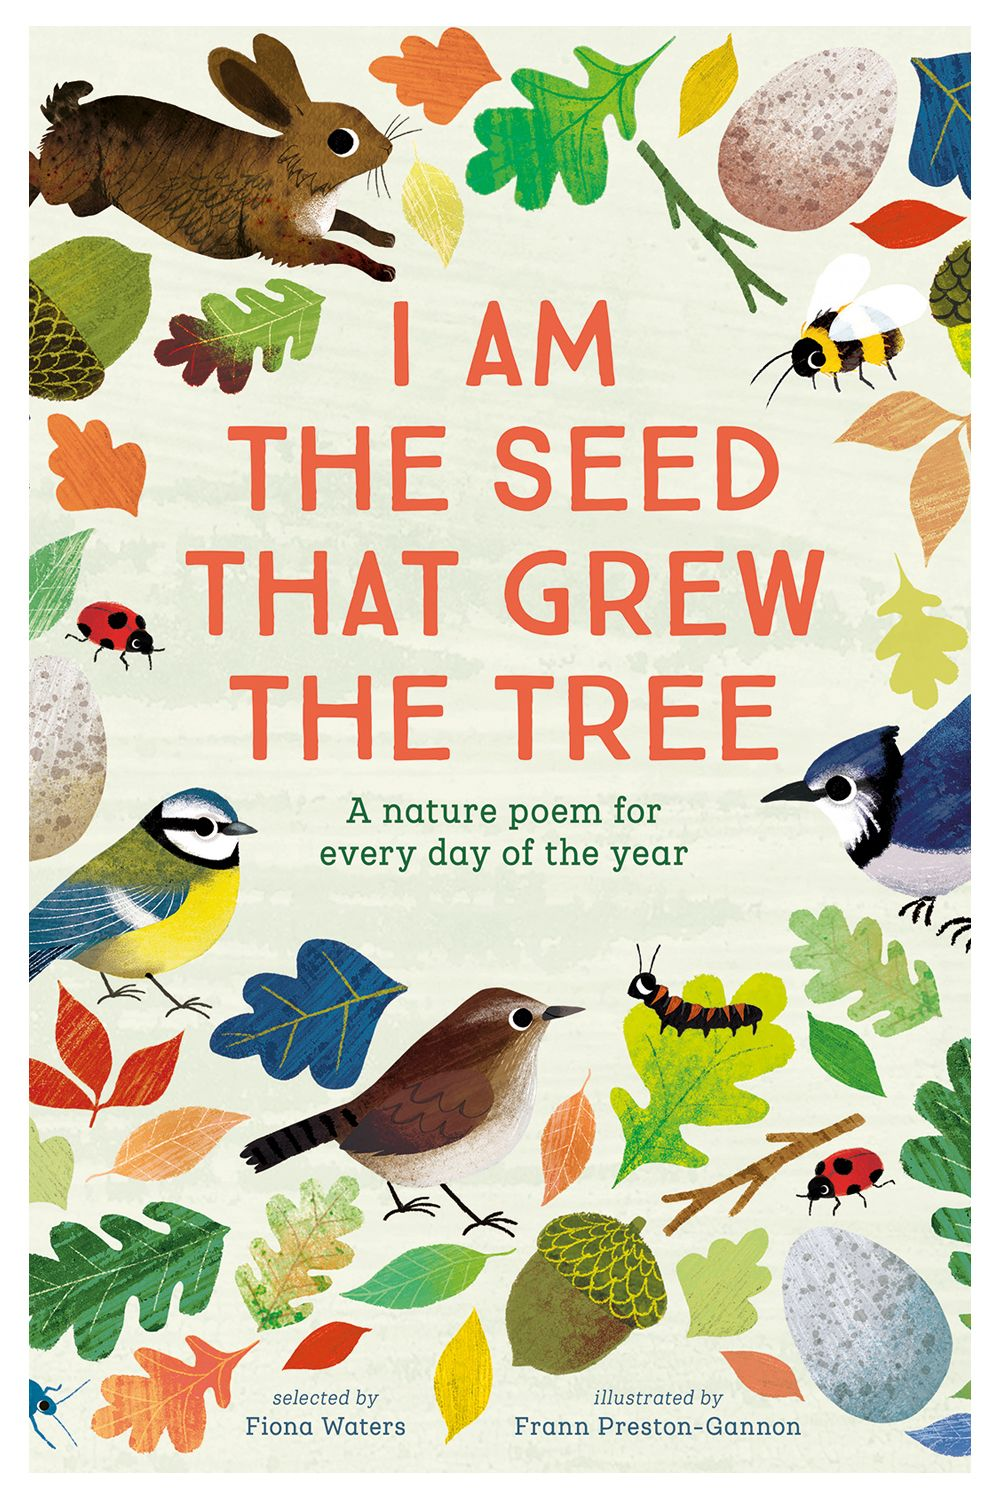 I Am the Seed That Grew the Tree by Fiona Waters (illustrated by Frann Preston-Gannon)